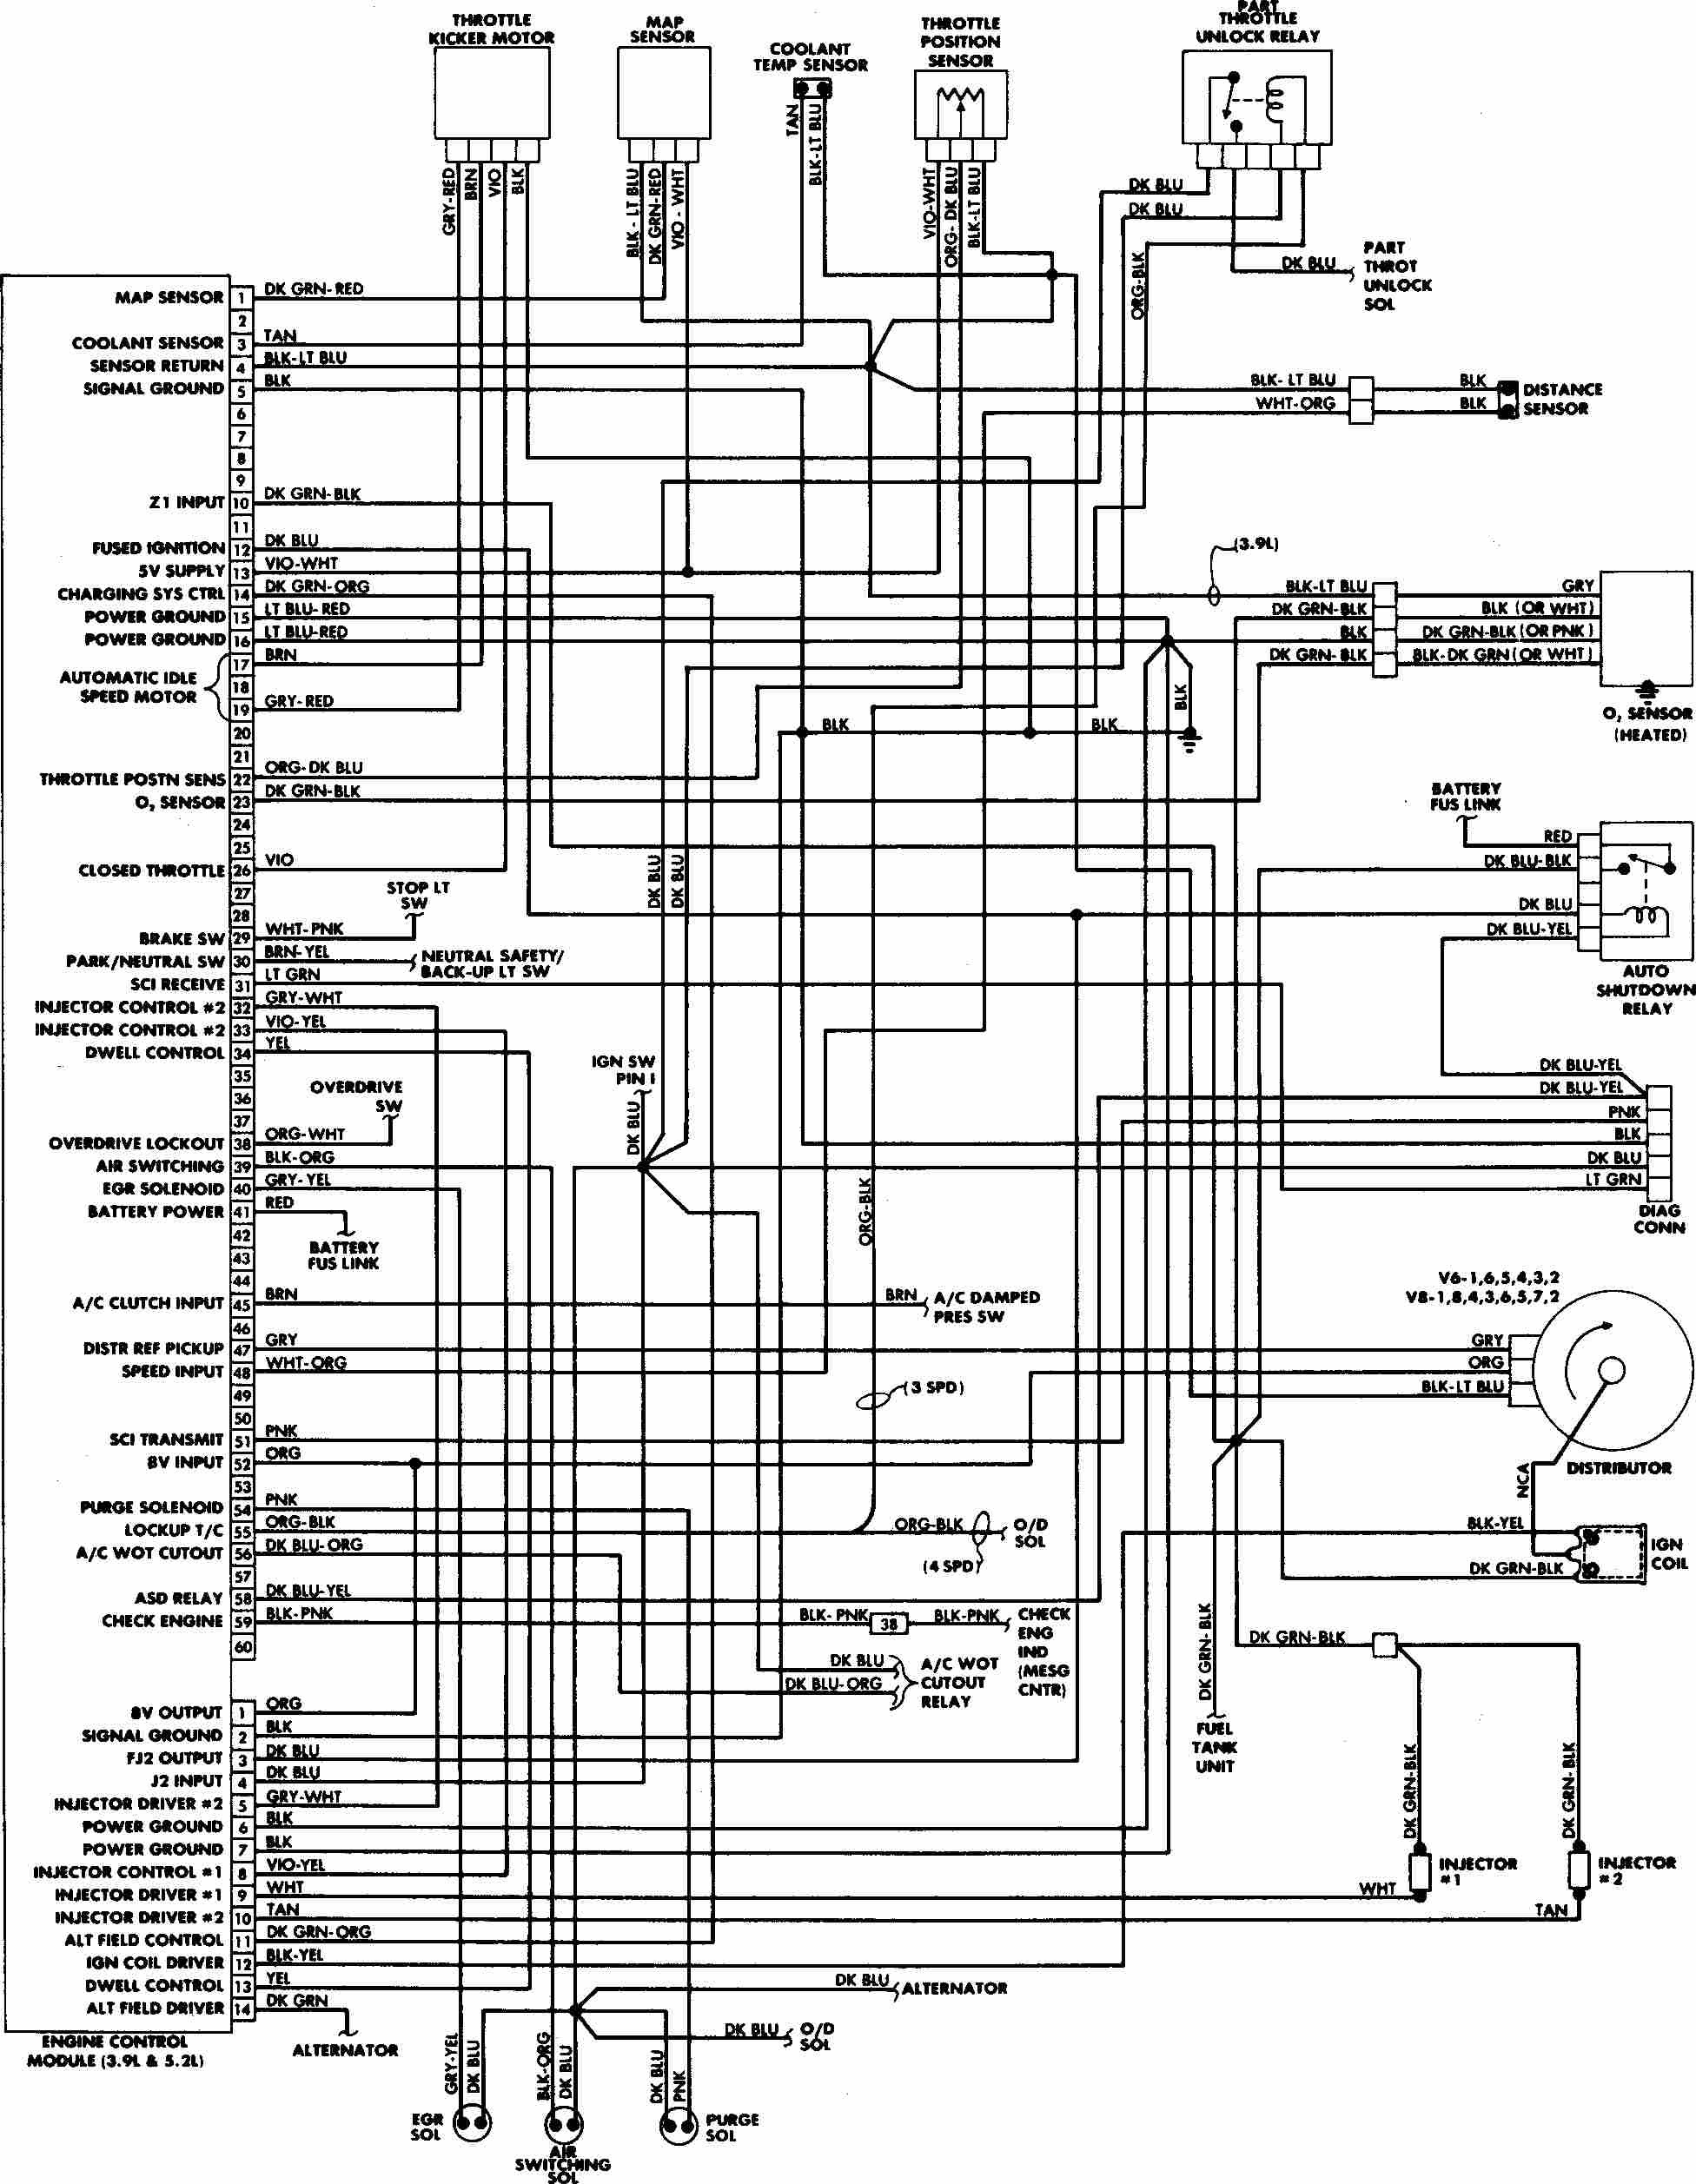 Dodge Dakota Tail Light Wiring Diagram 2003 Dodge Durango Emissions Diagram  Free Download Wiring Diagram Of